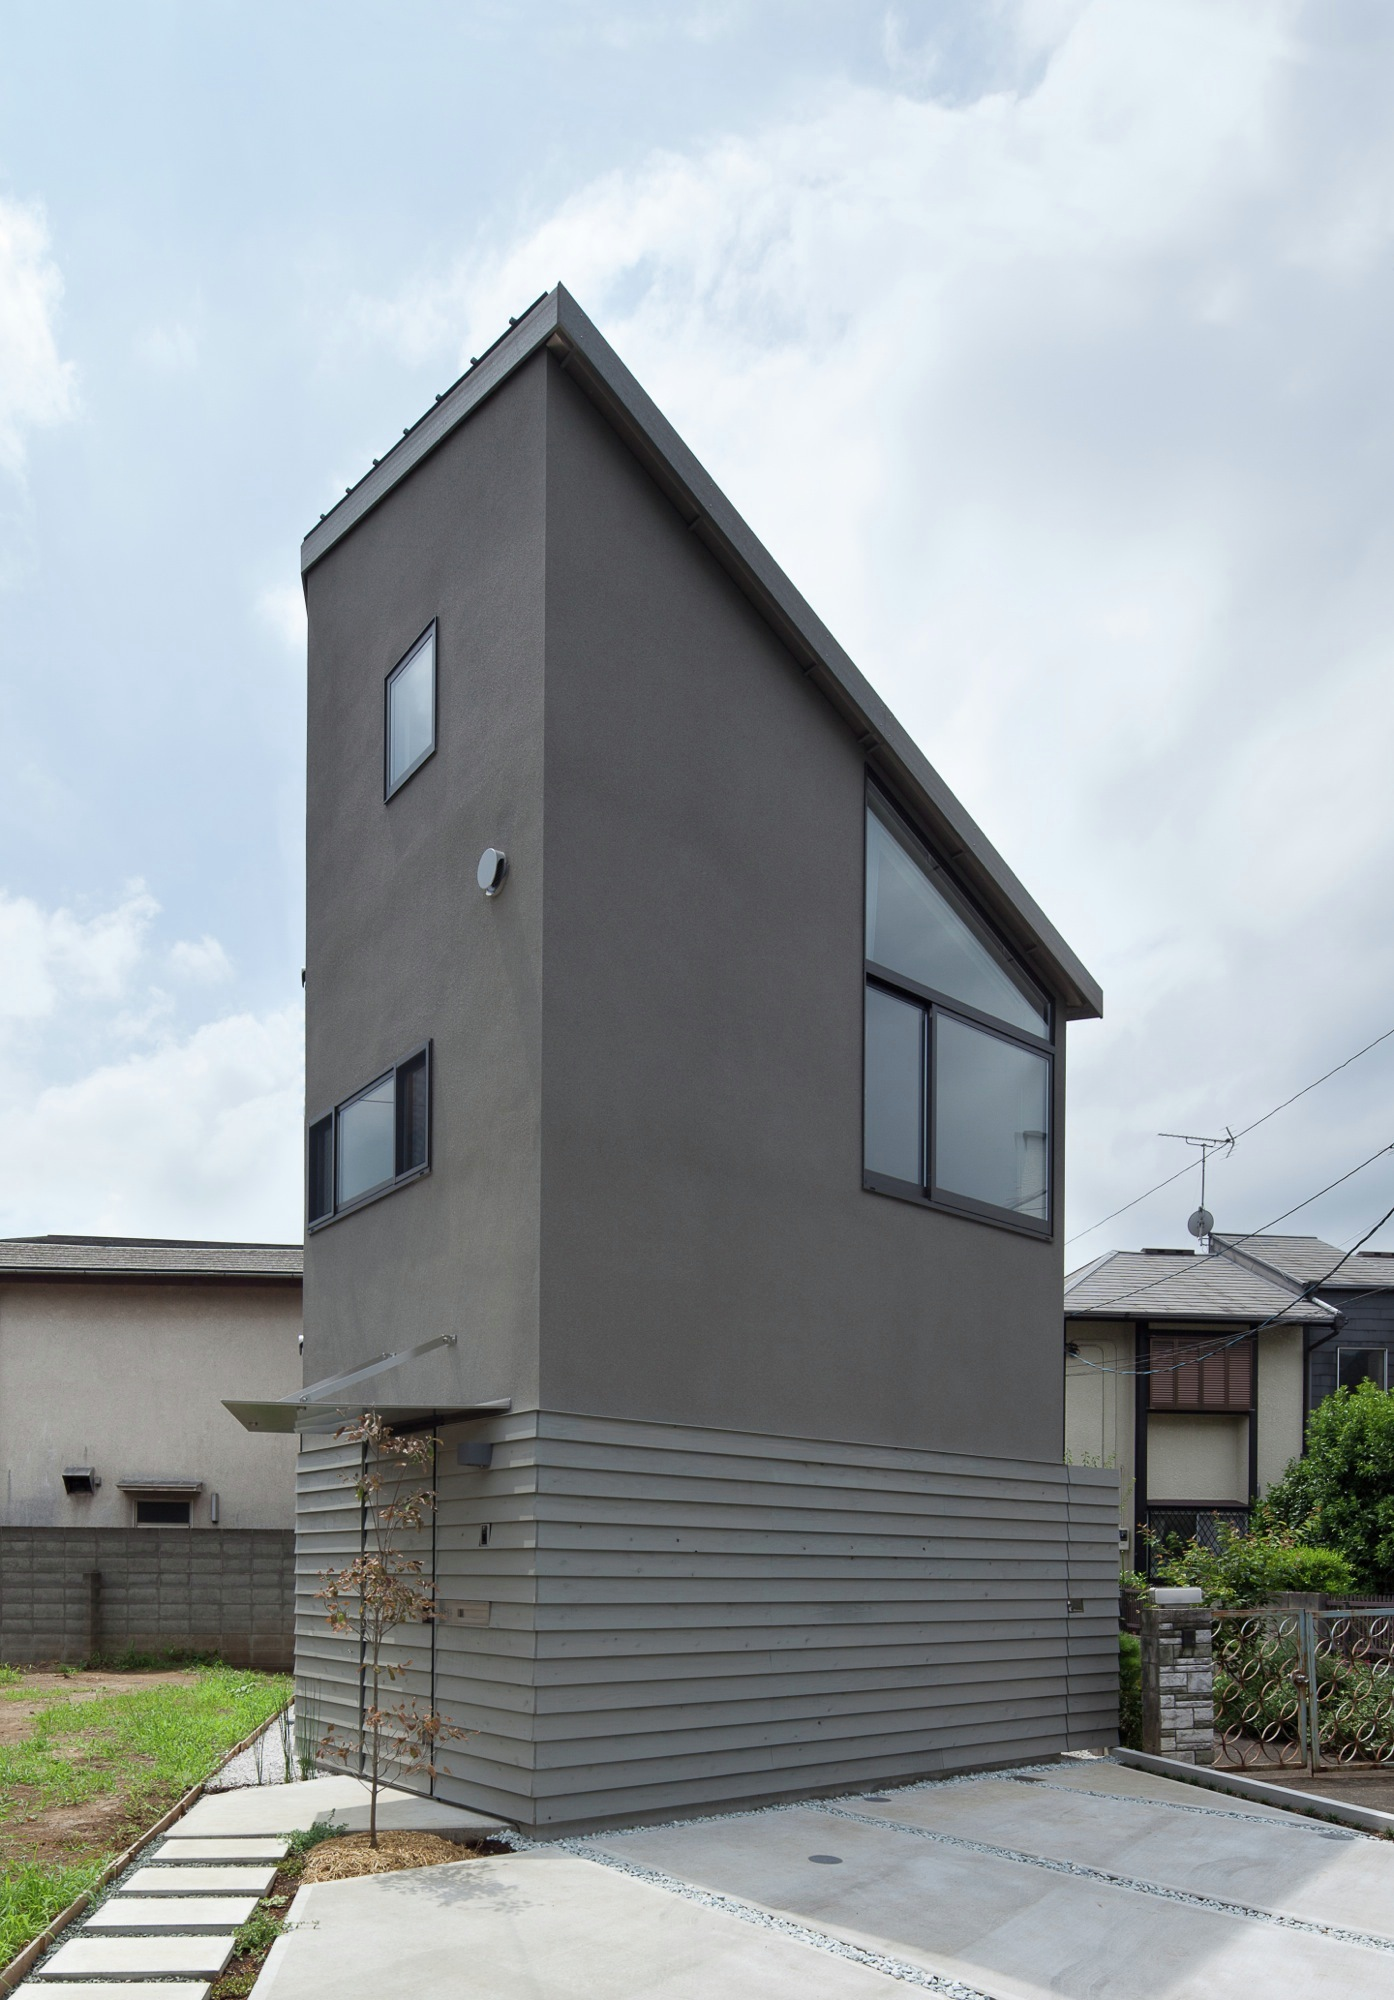 Small House With Floating Treehouse / Yuki Miyamoto Architect